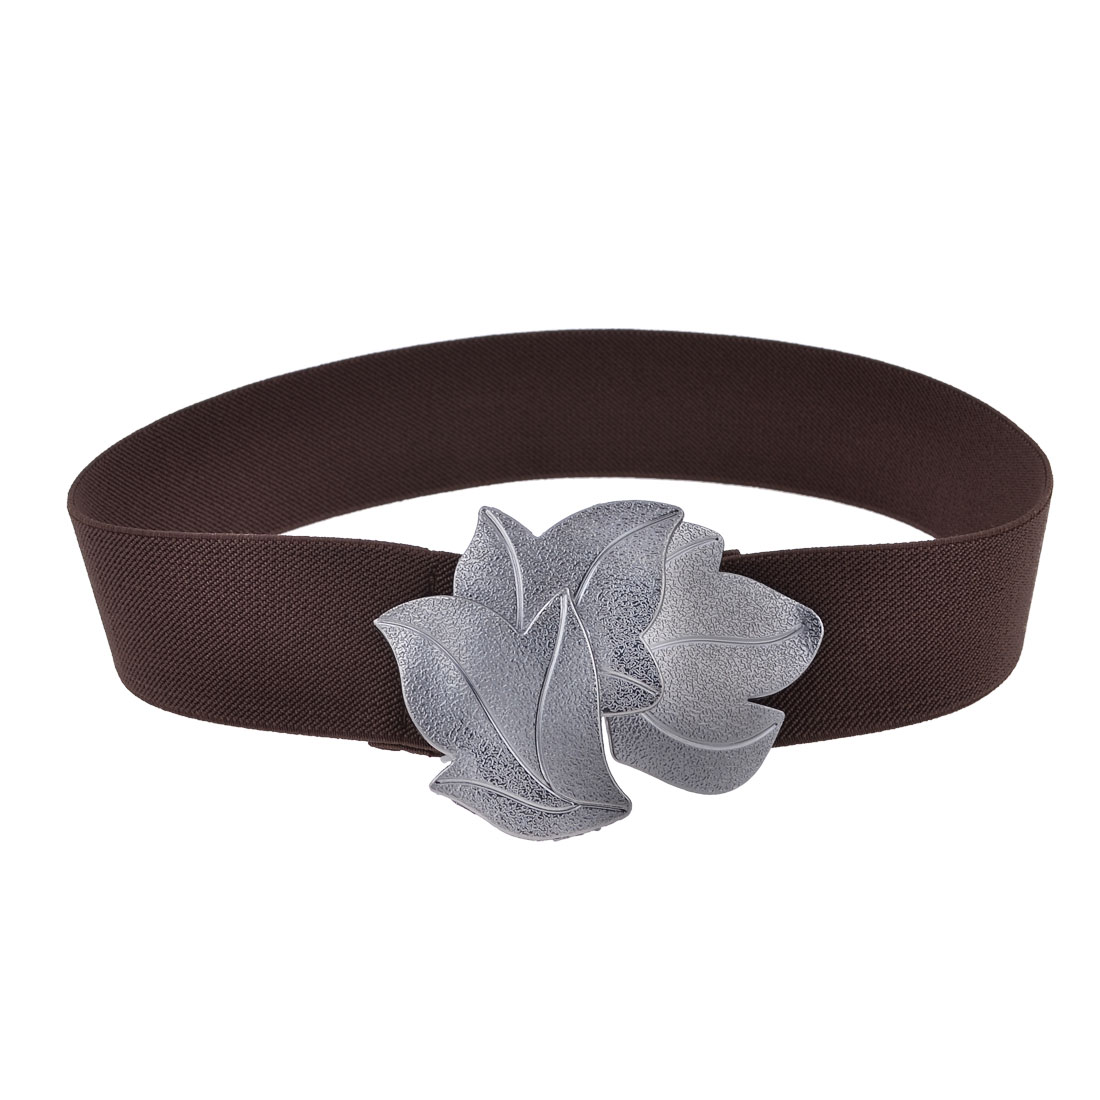 Brown Elastic Stretch Band Metal Single Pin Buckle Belt for Ladies